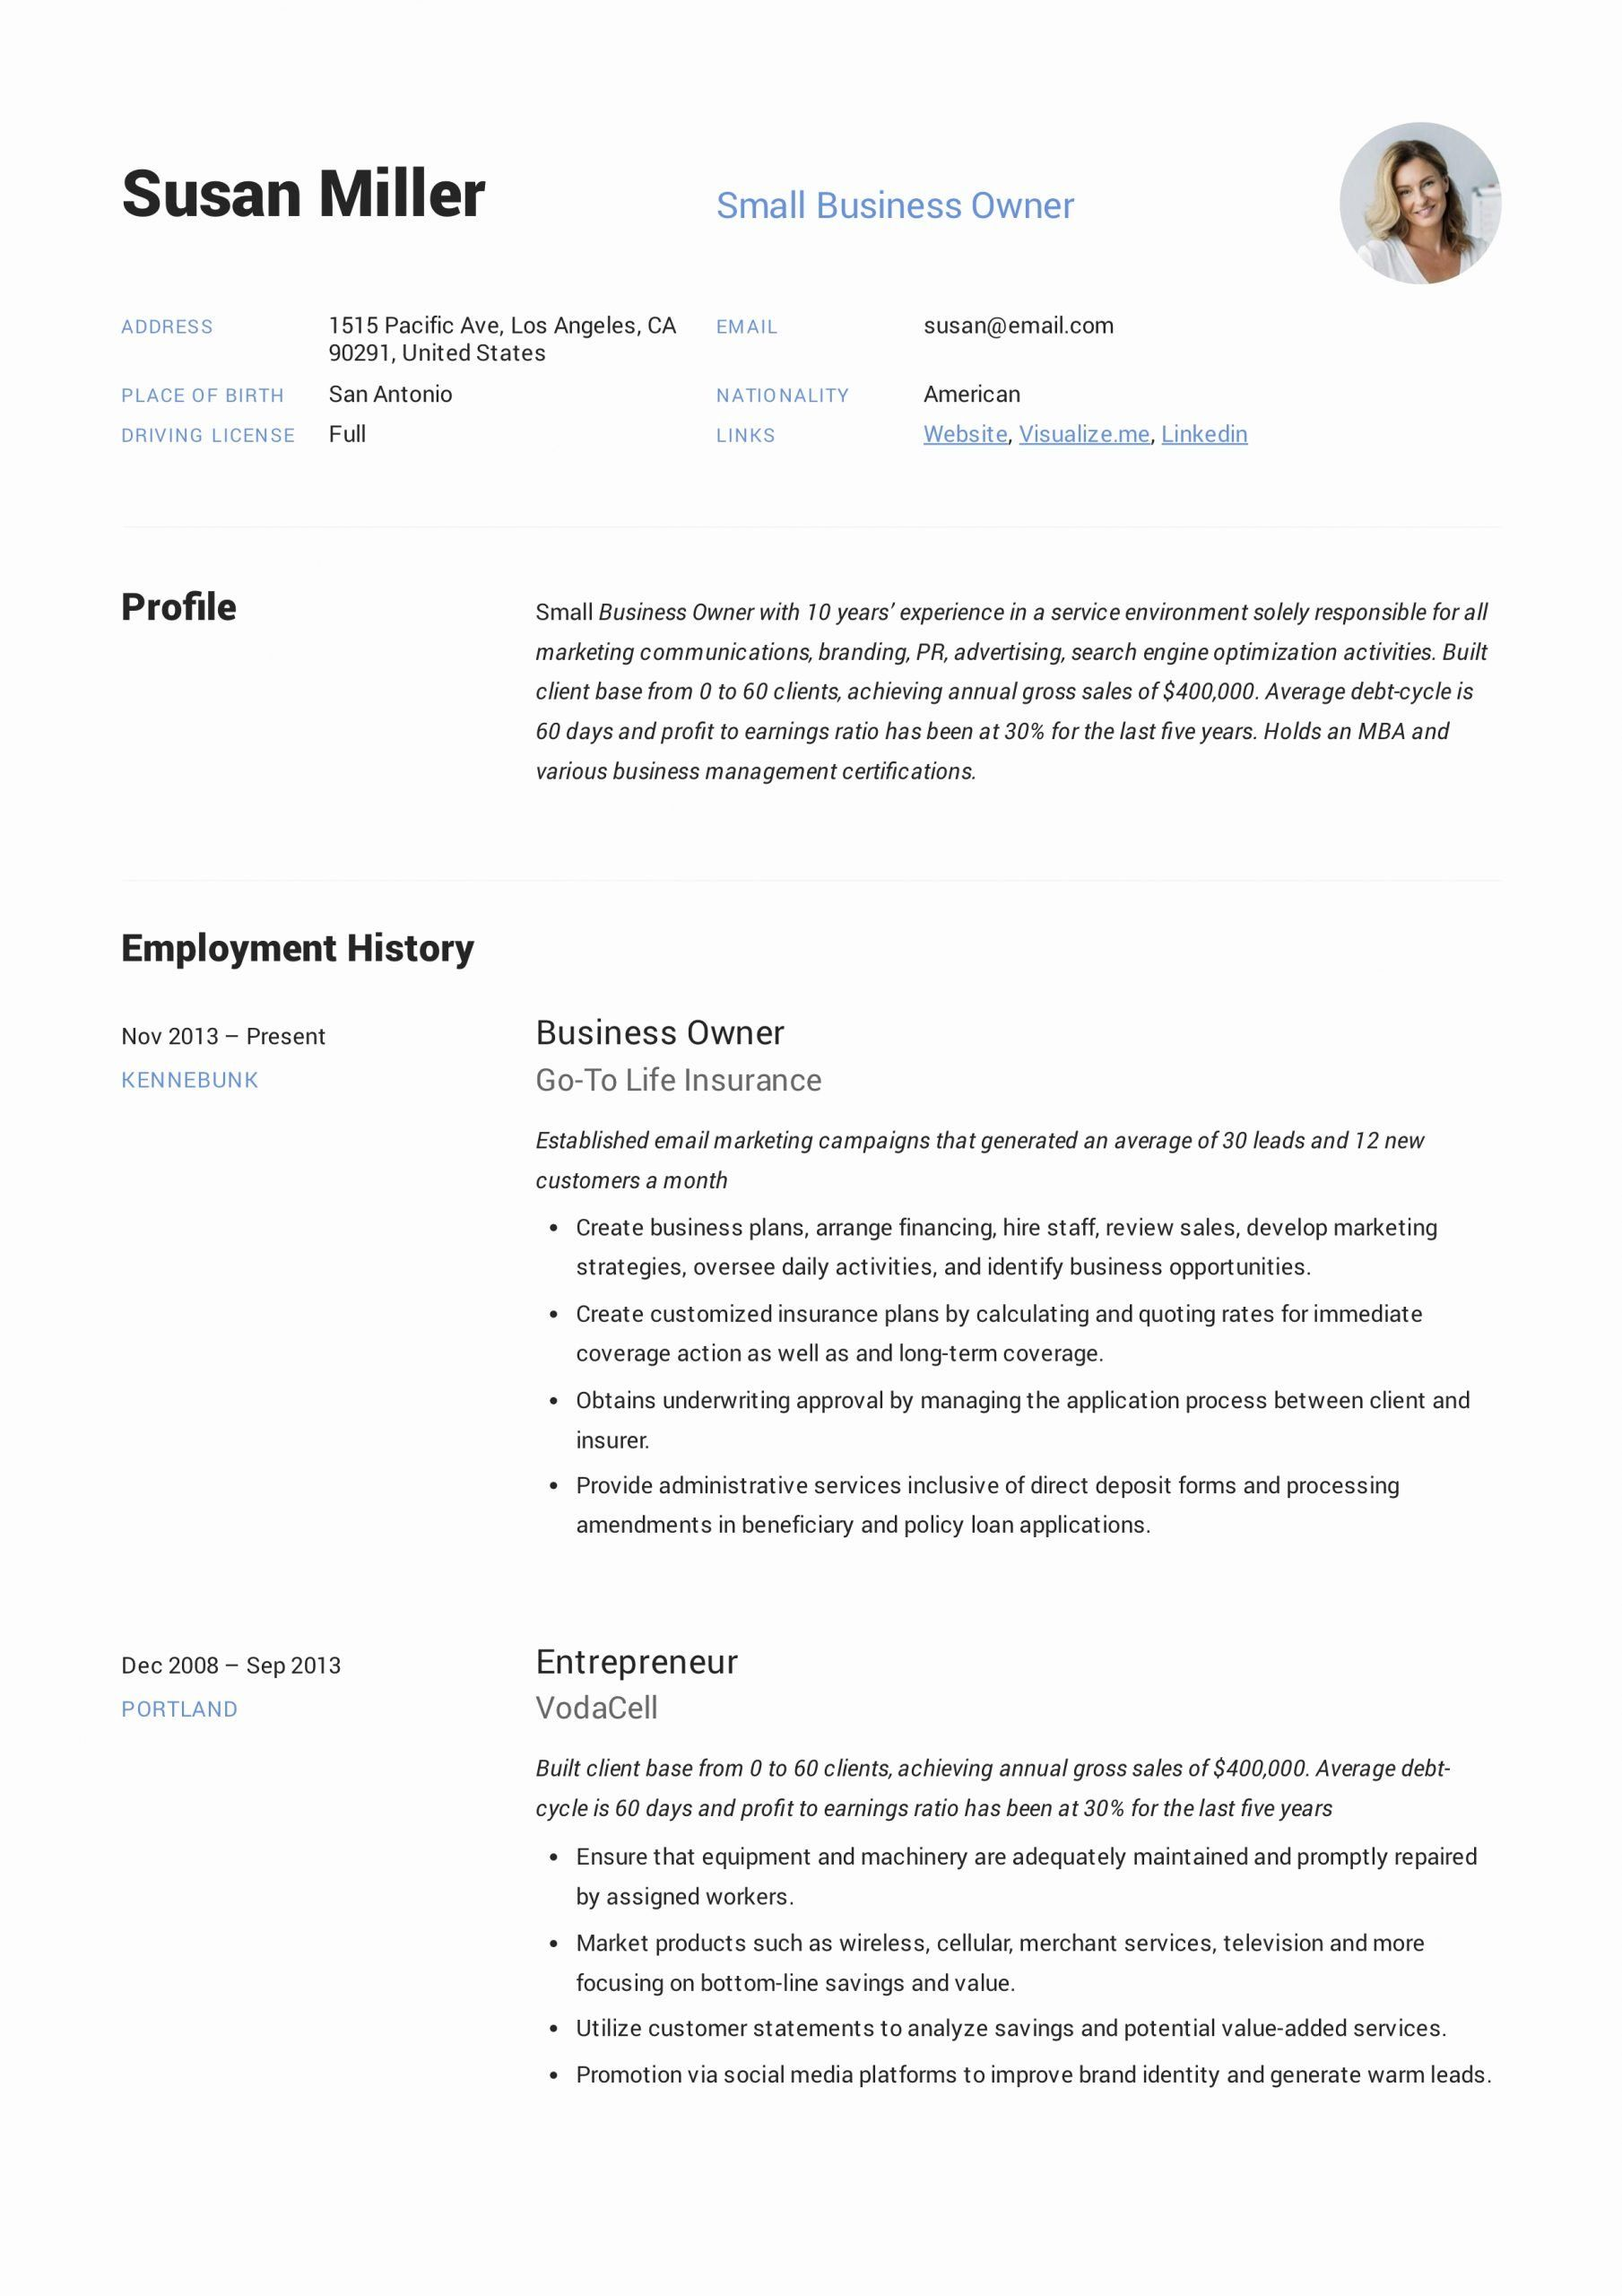 Resume For Small Business Owner Inspirational Small Business Owner Resume Guide 12 Examples Pdf In 2020 Resume Guide Resume Examples Job Resume Examples